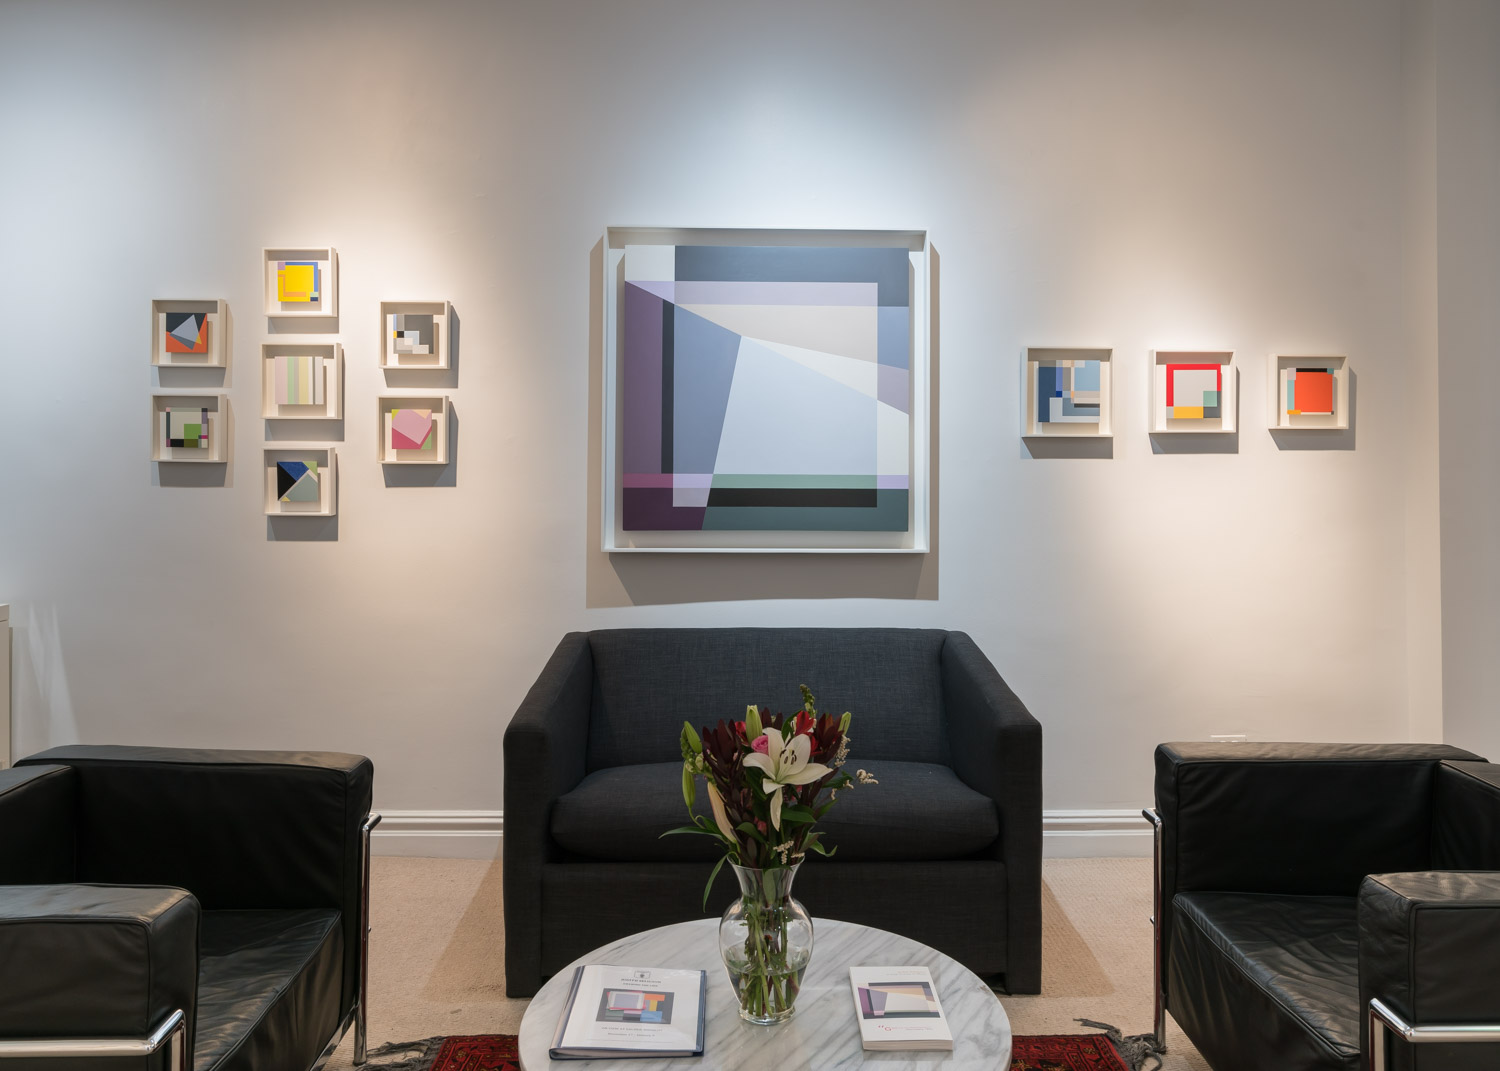 Installation view of my solo exhibition Drawing the Line at Galerie Mourlot. Photograph by Kris Graves.